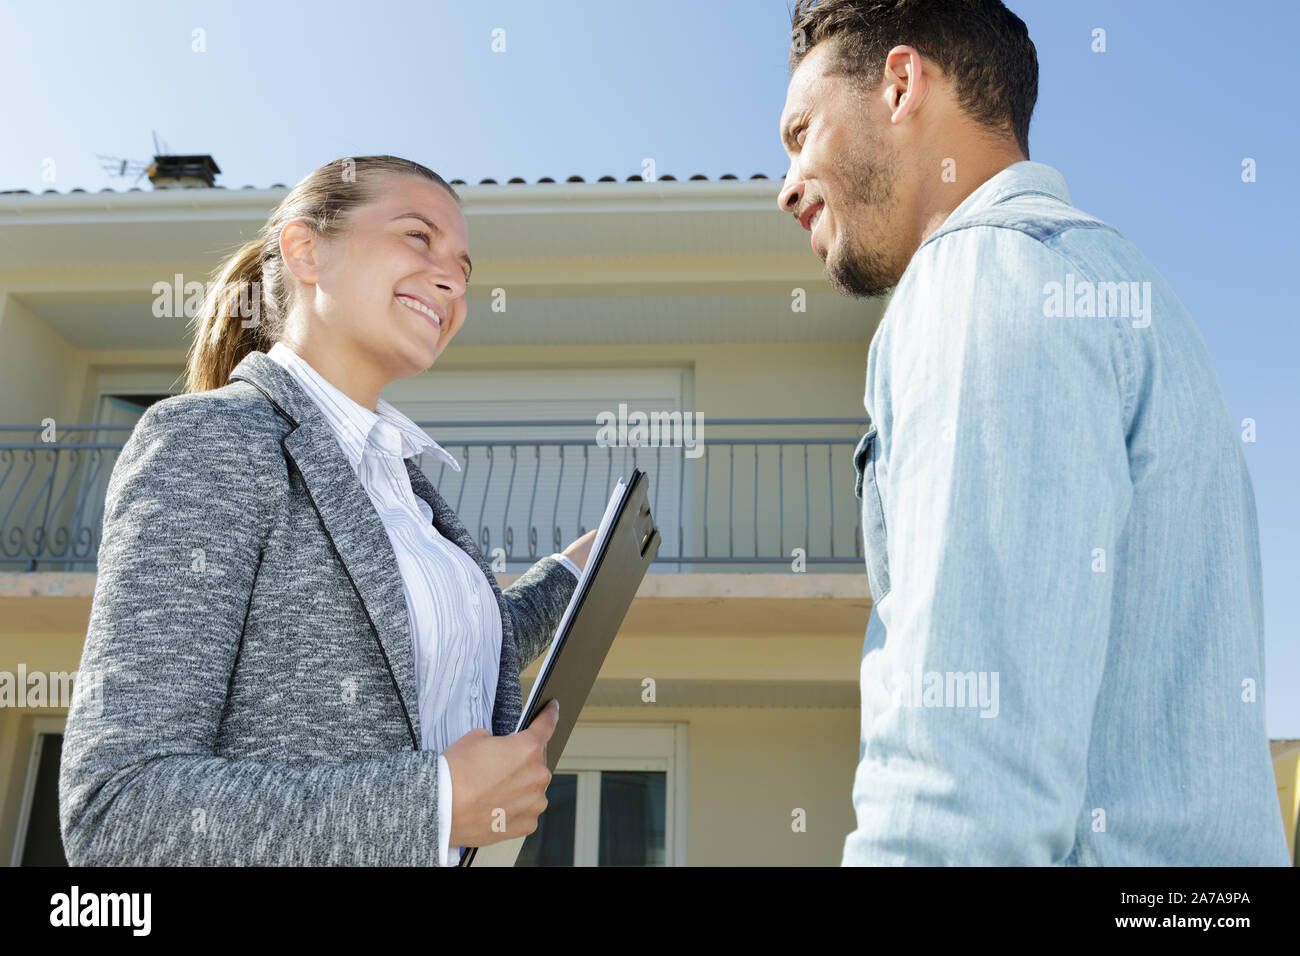 real estate agent shows new apartment in building Stock Photo